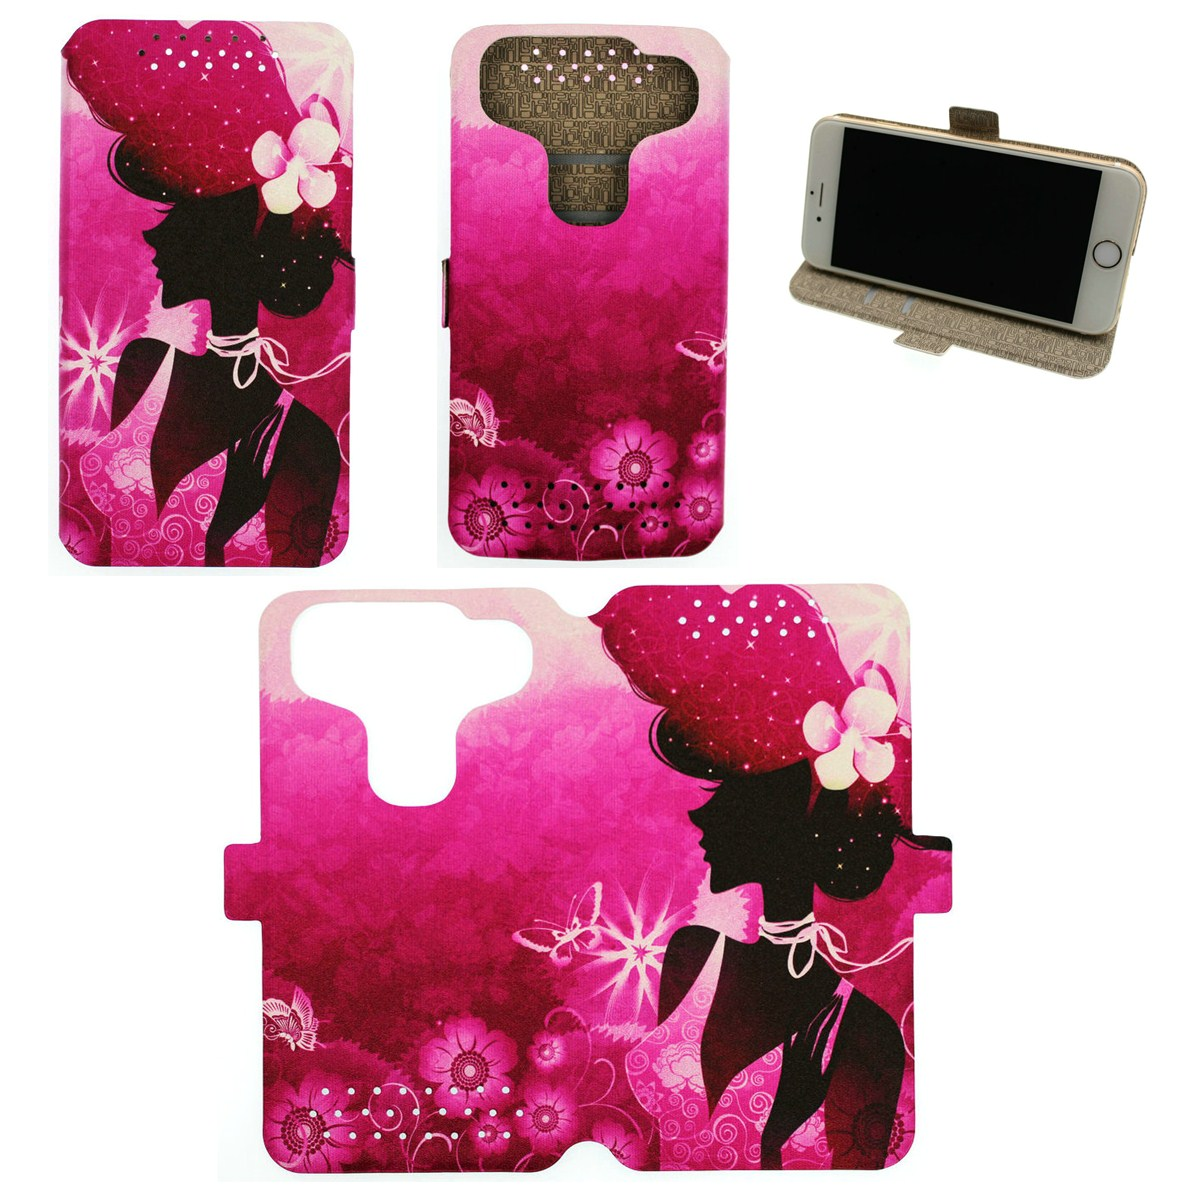 Universal Phone Cover Case for Sony Ericsson Xperia X10 Case Custom images SN(China (Mainland))